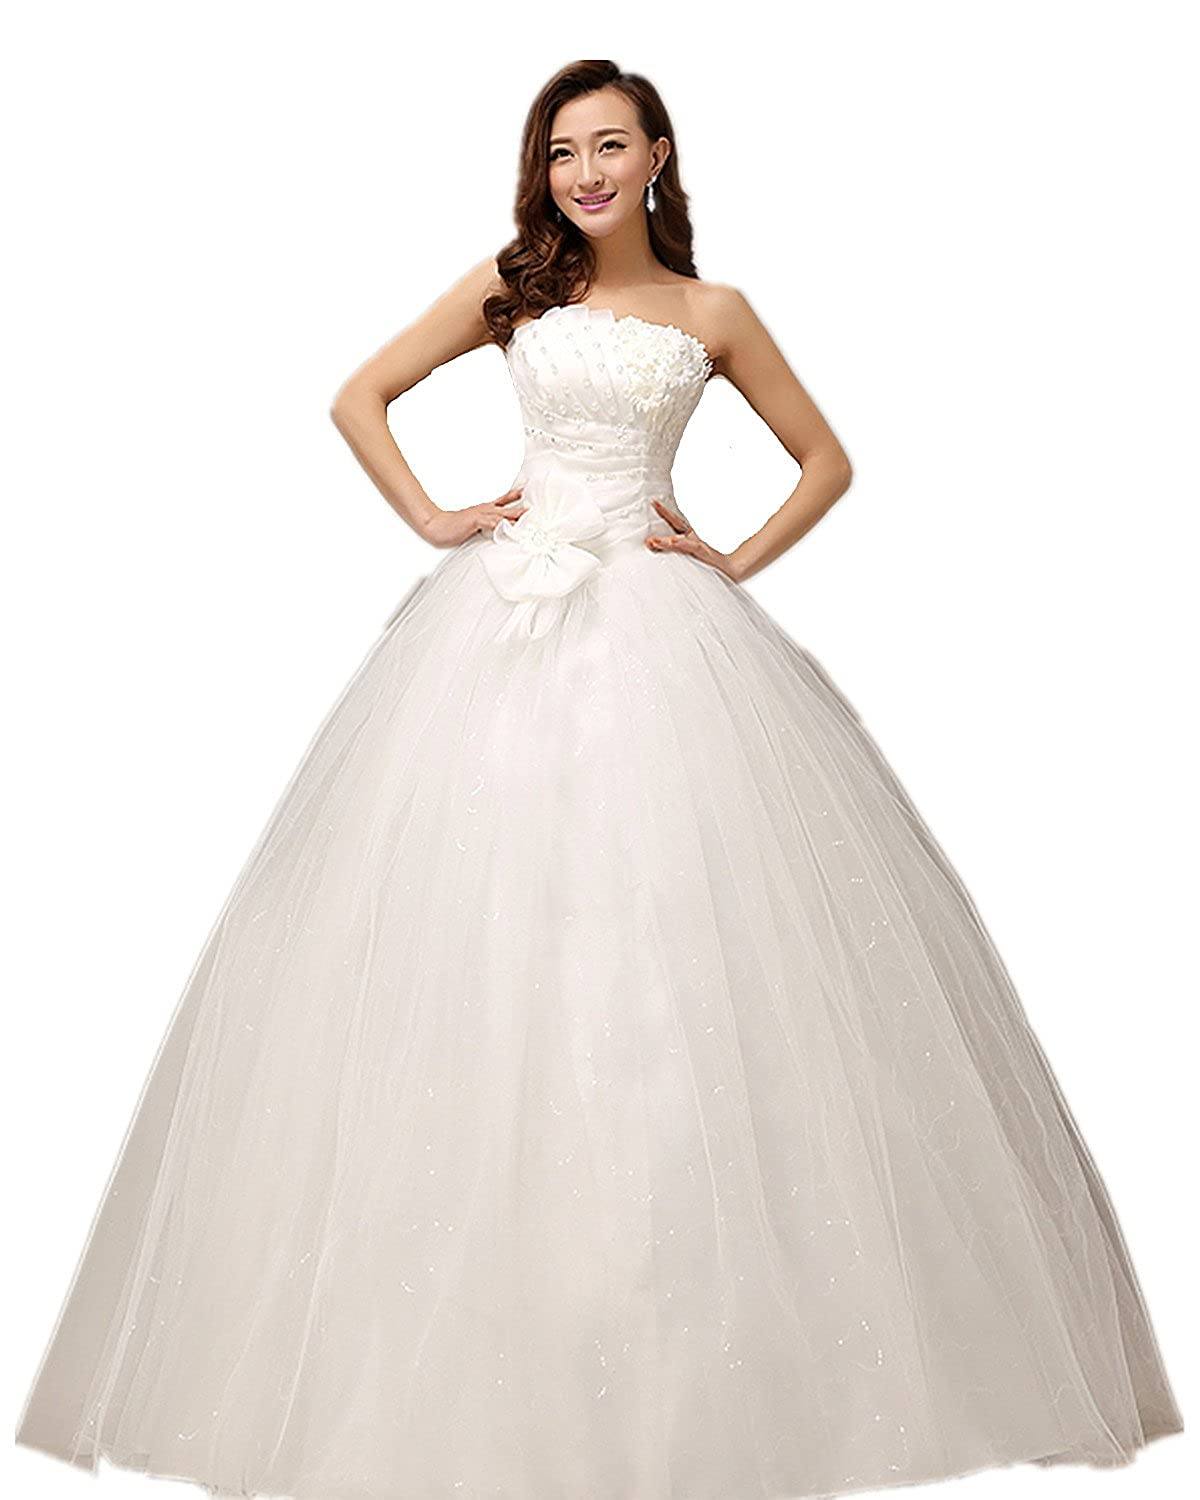 atopdress@ XF01 Wedding bride wear big day dress eveing ball prom dress party wear